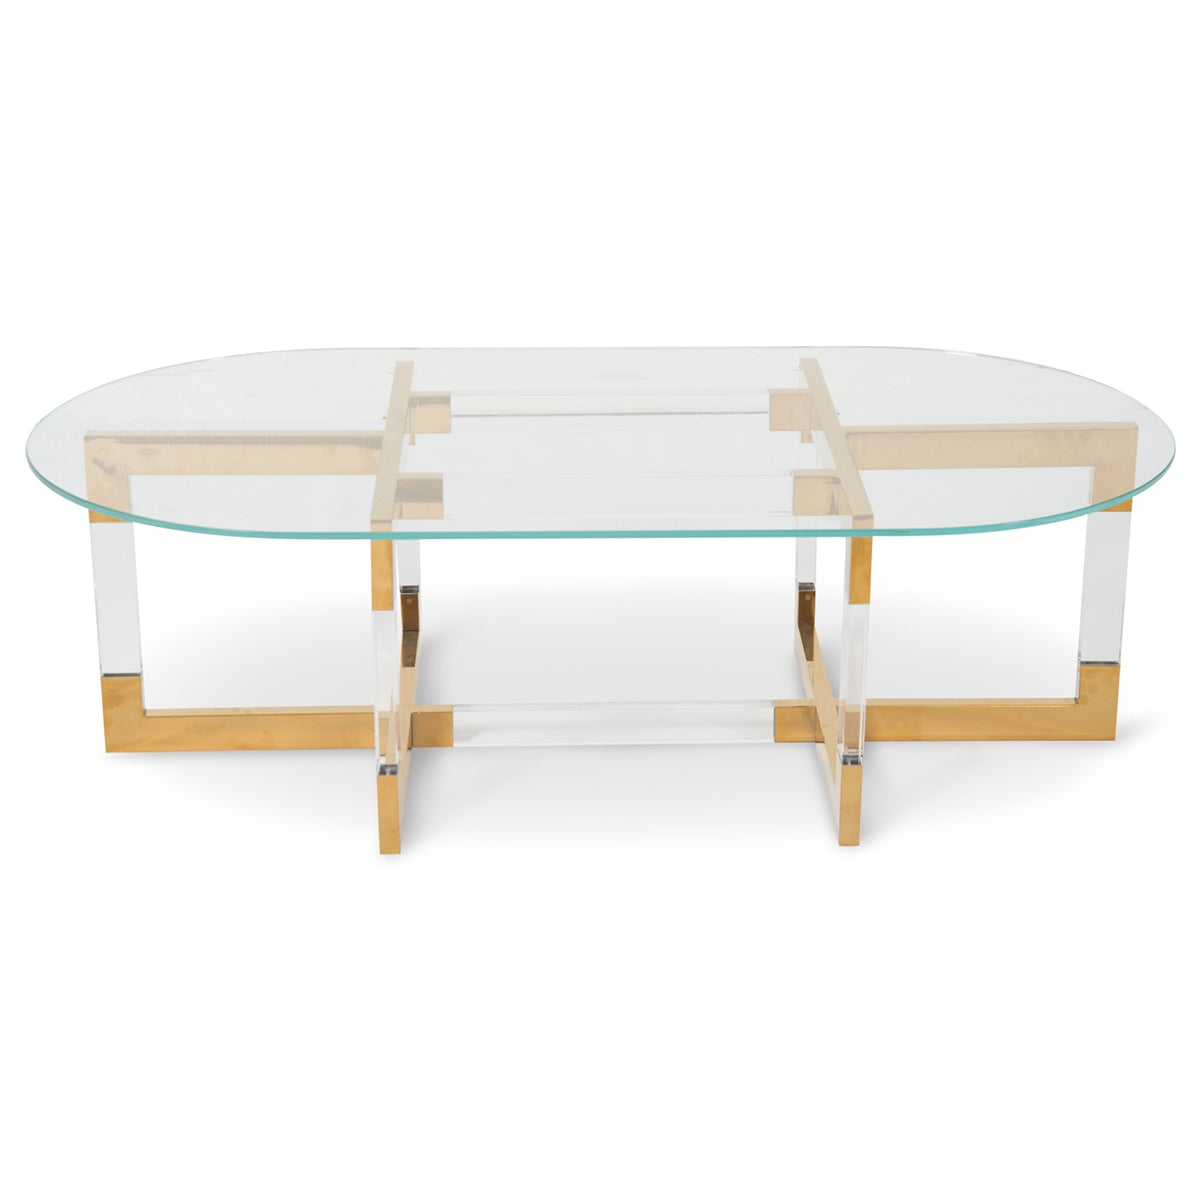 Trousdale 2 Coffee Table with Oval Glass Top - ModShop1.com